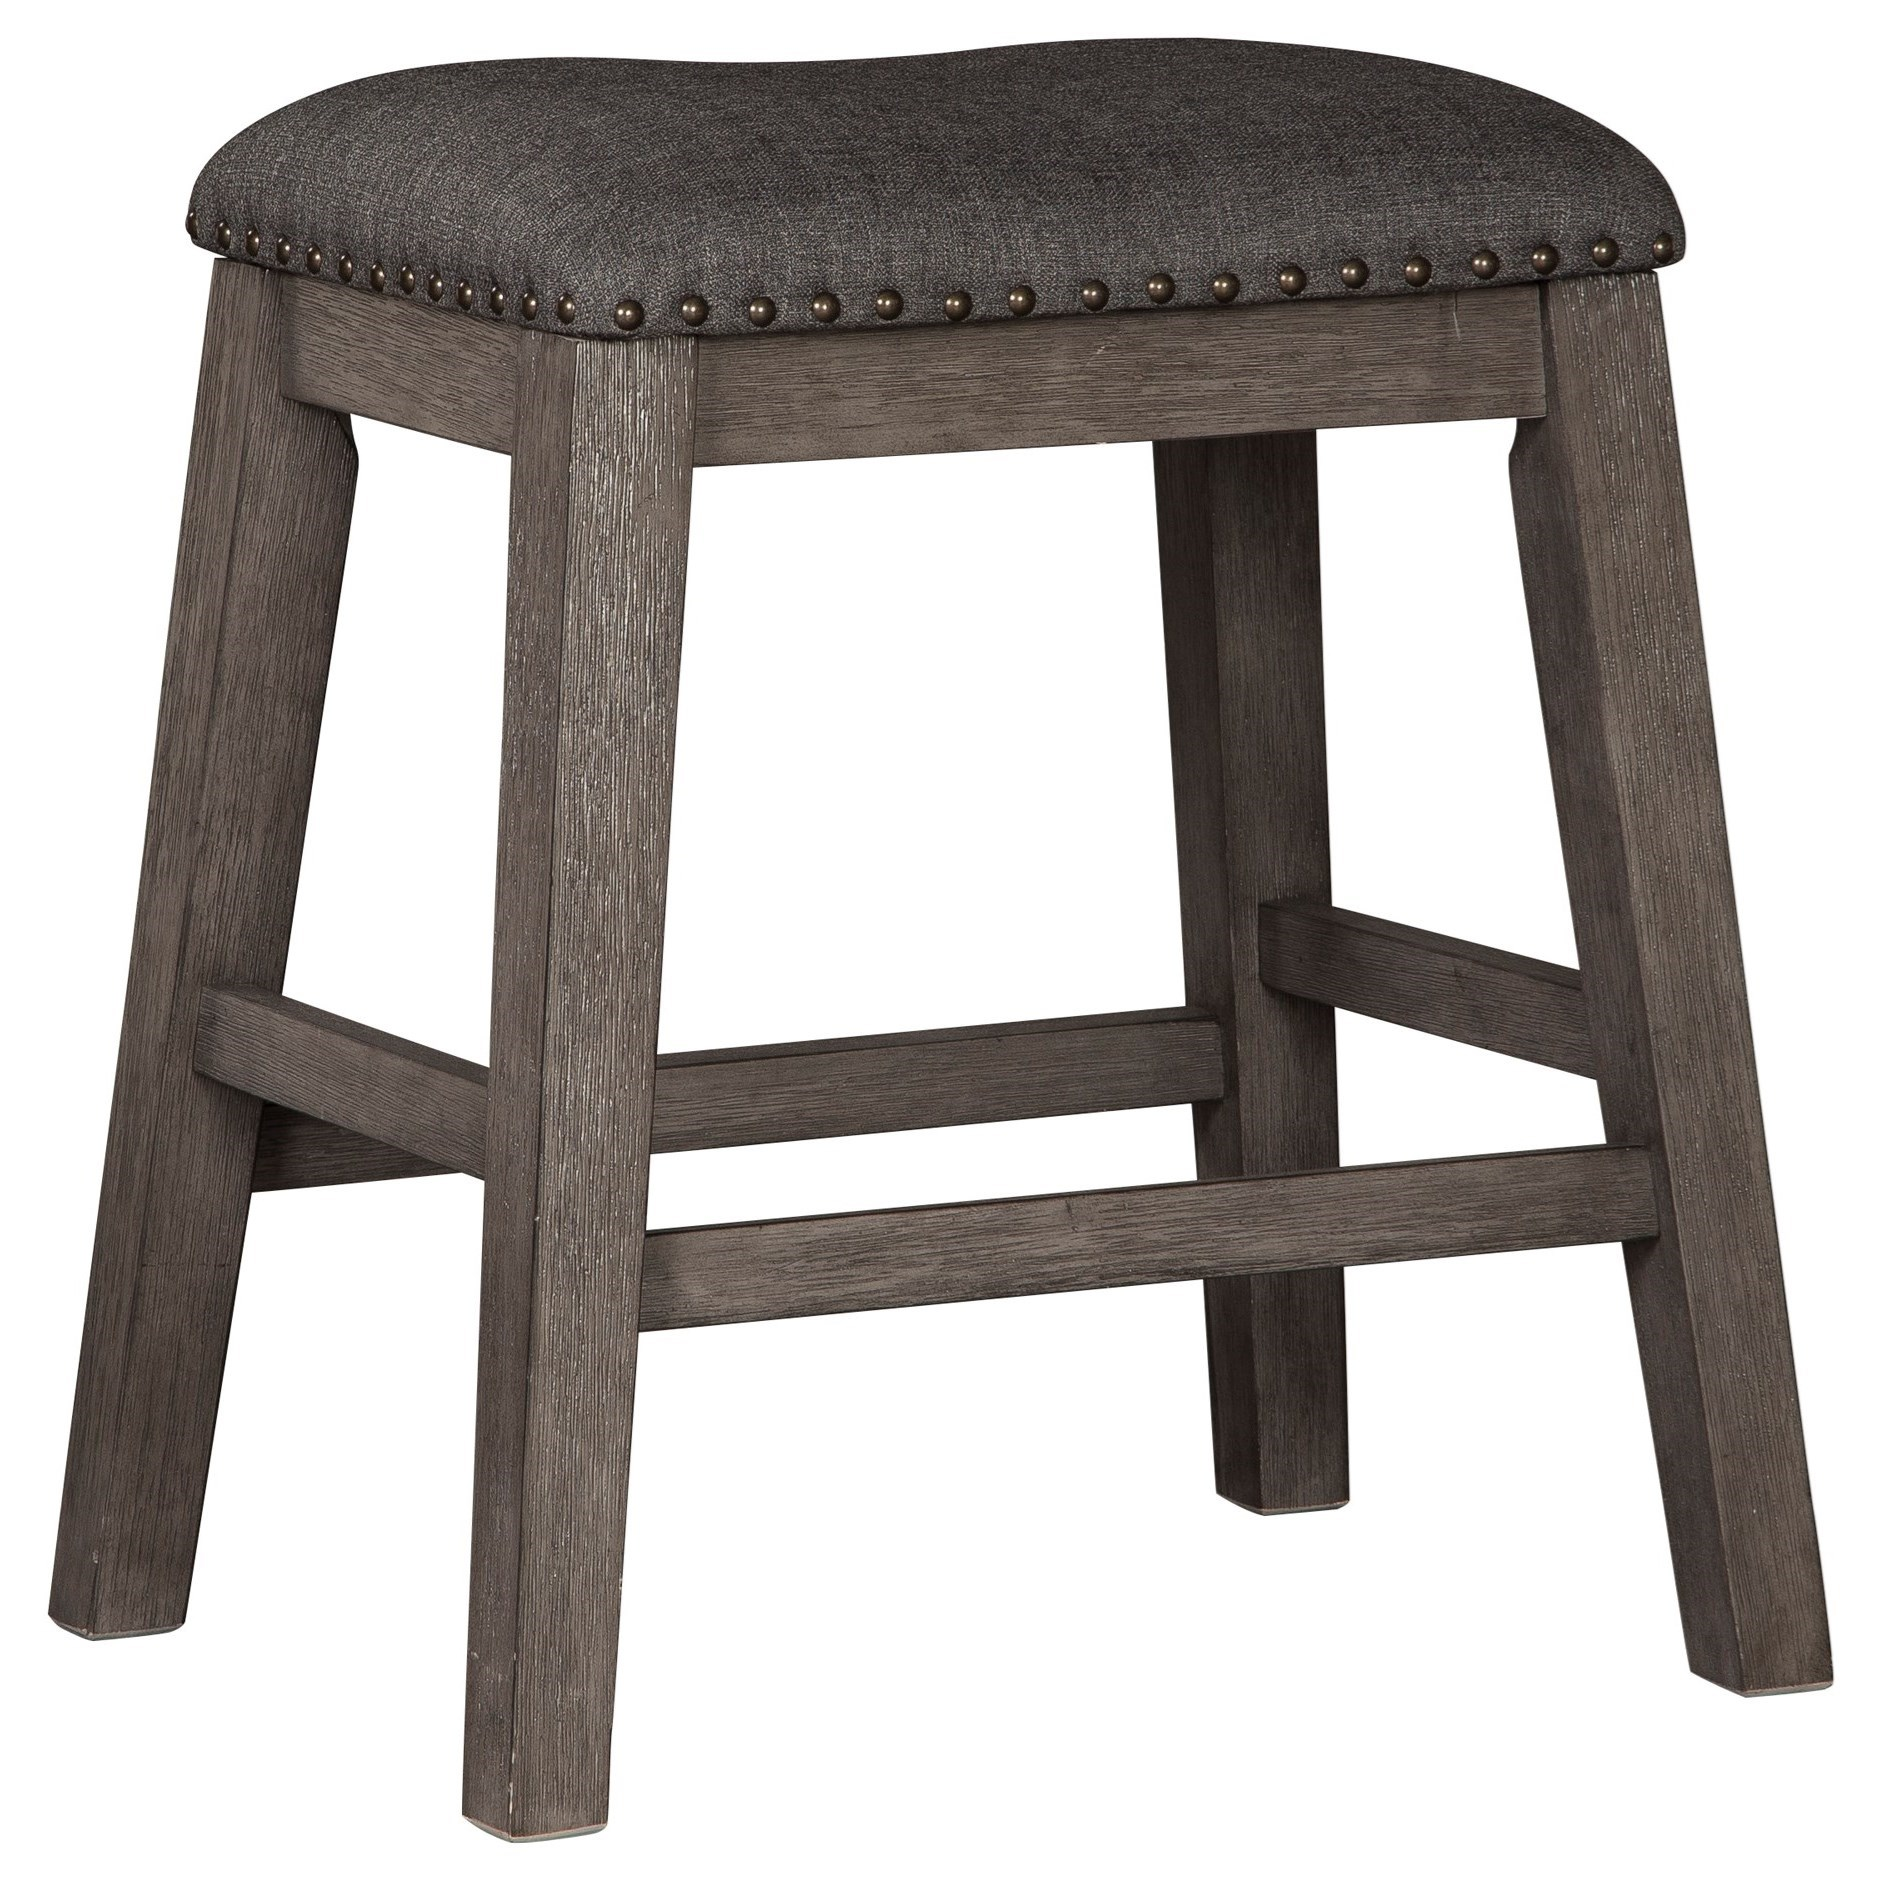 Caitbrook Upholstered Stool by Signature Design by Ashley at Miller Waldrop Furniture and Decor